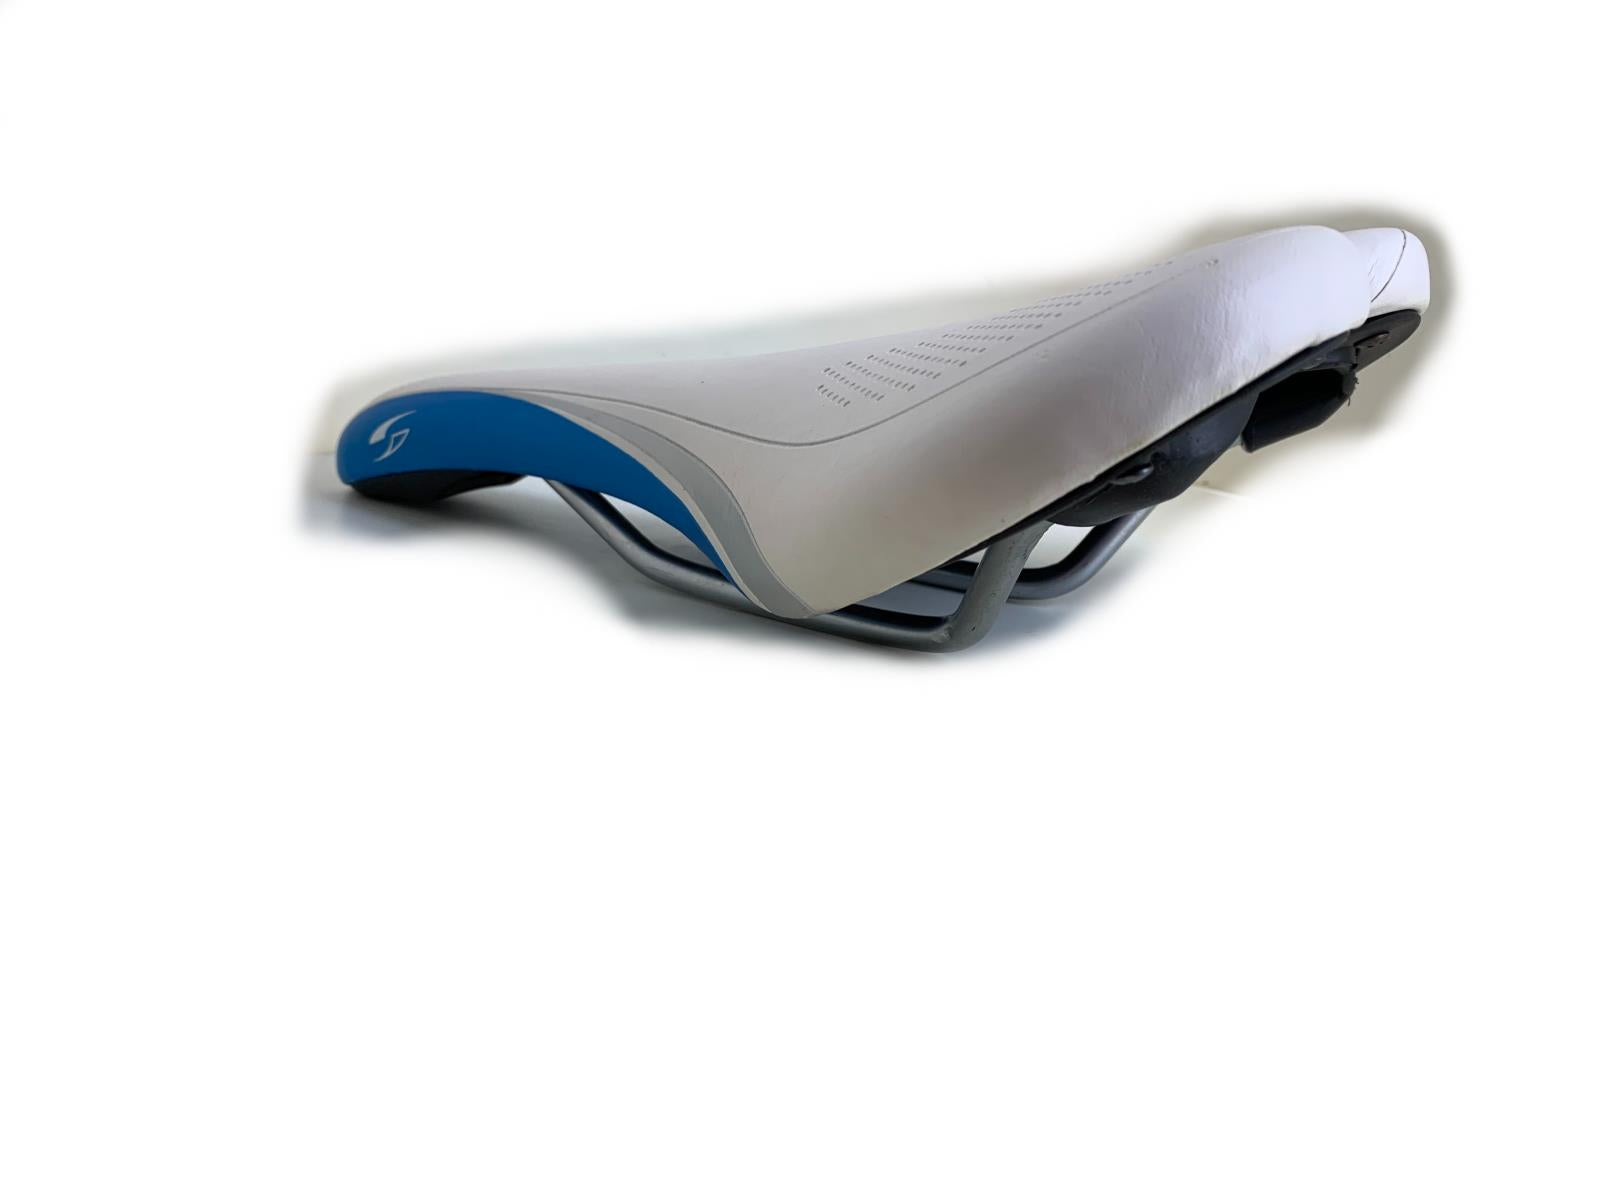 Sundeal Bike Cycling Saddle Seat White/Blue New Take Off BLEM